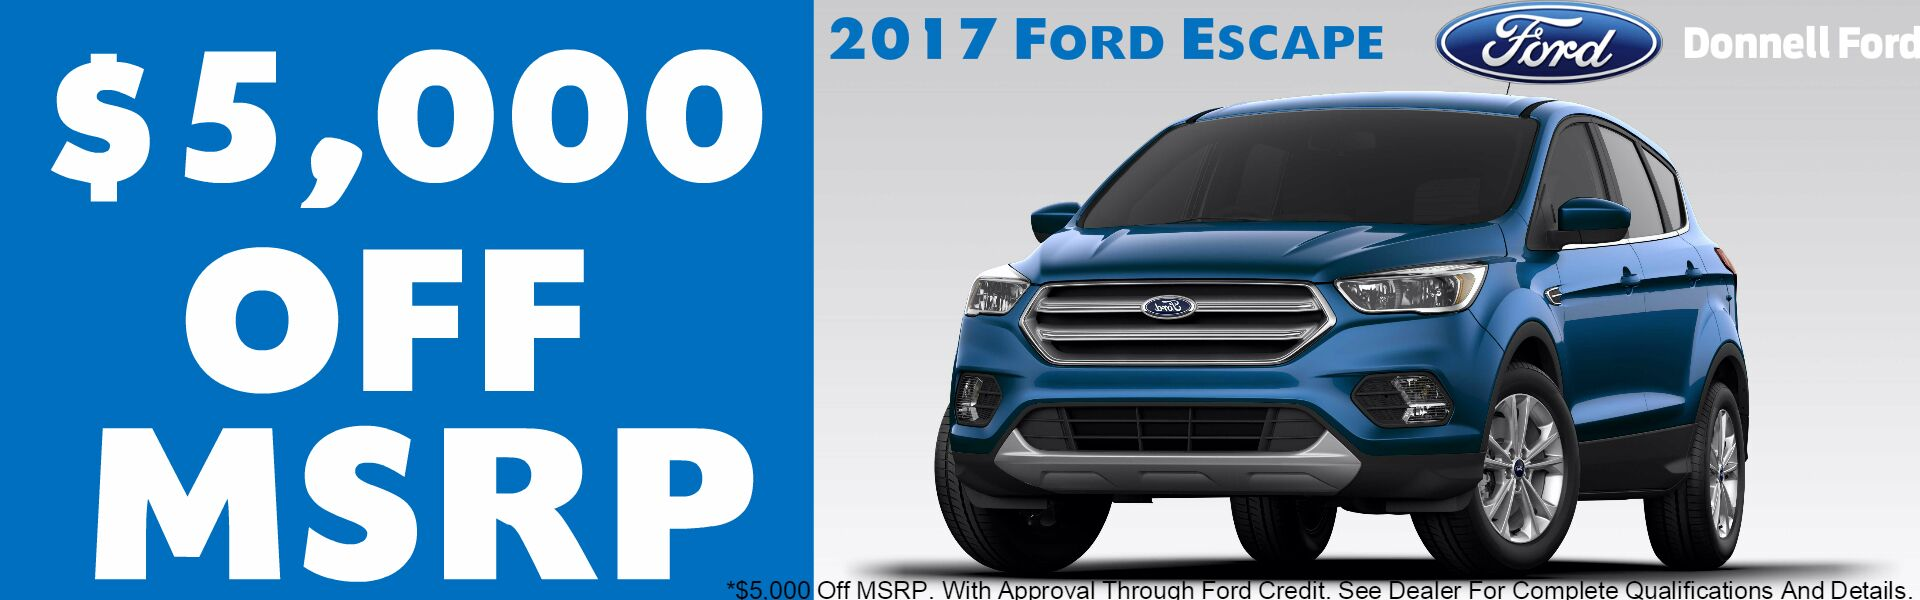 Donnell Ford Jan 2017 Escape Banner